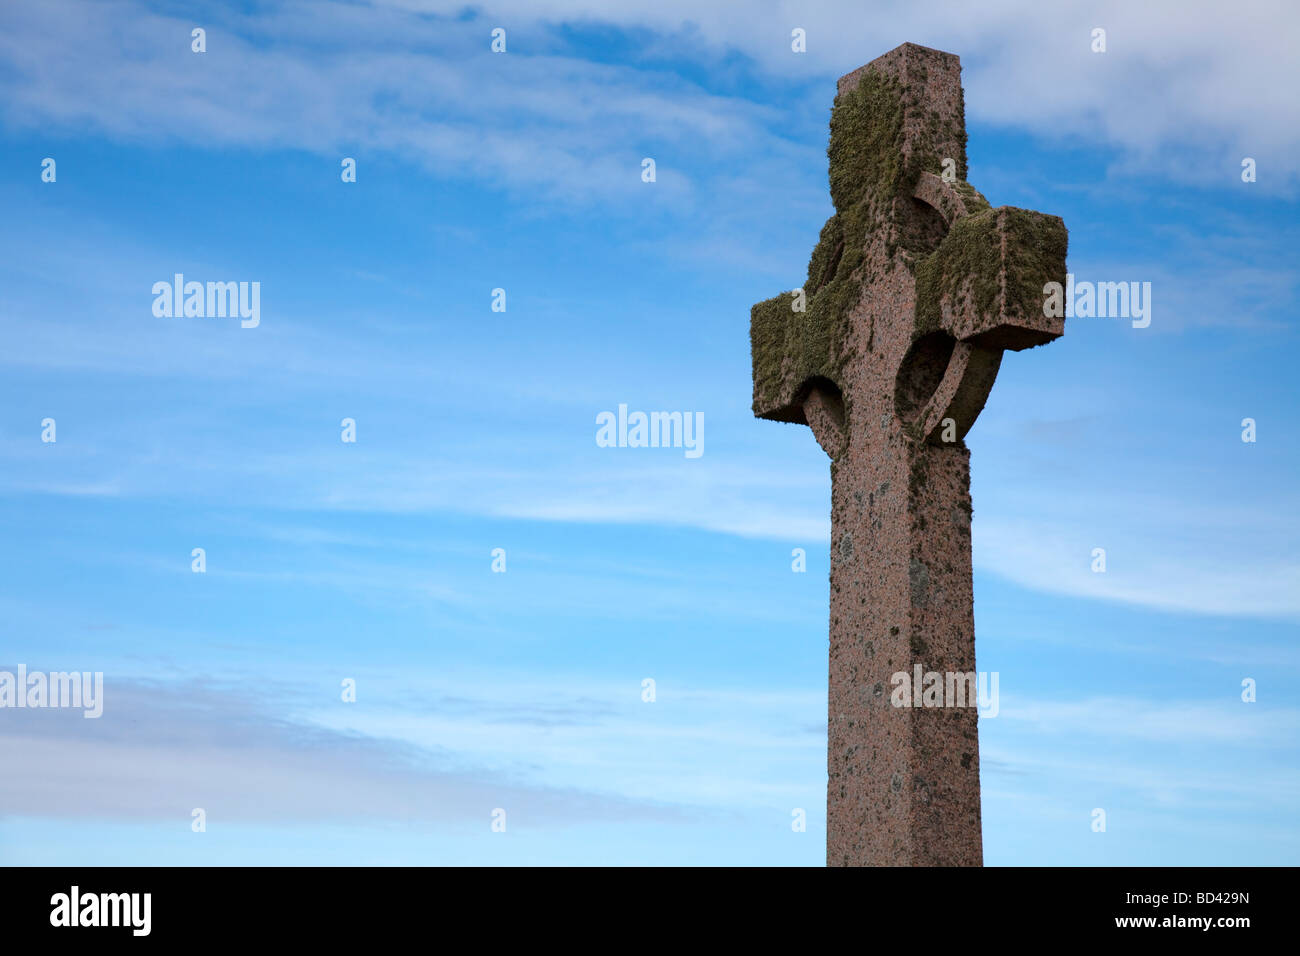 Celtic cross covered with moss and lichen, photographed on Iona, a small island in the Inner Hebrides group off - Stock Image